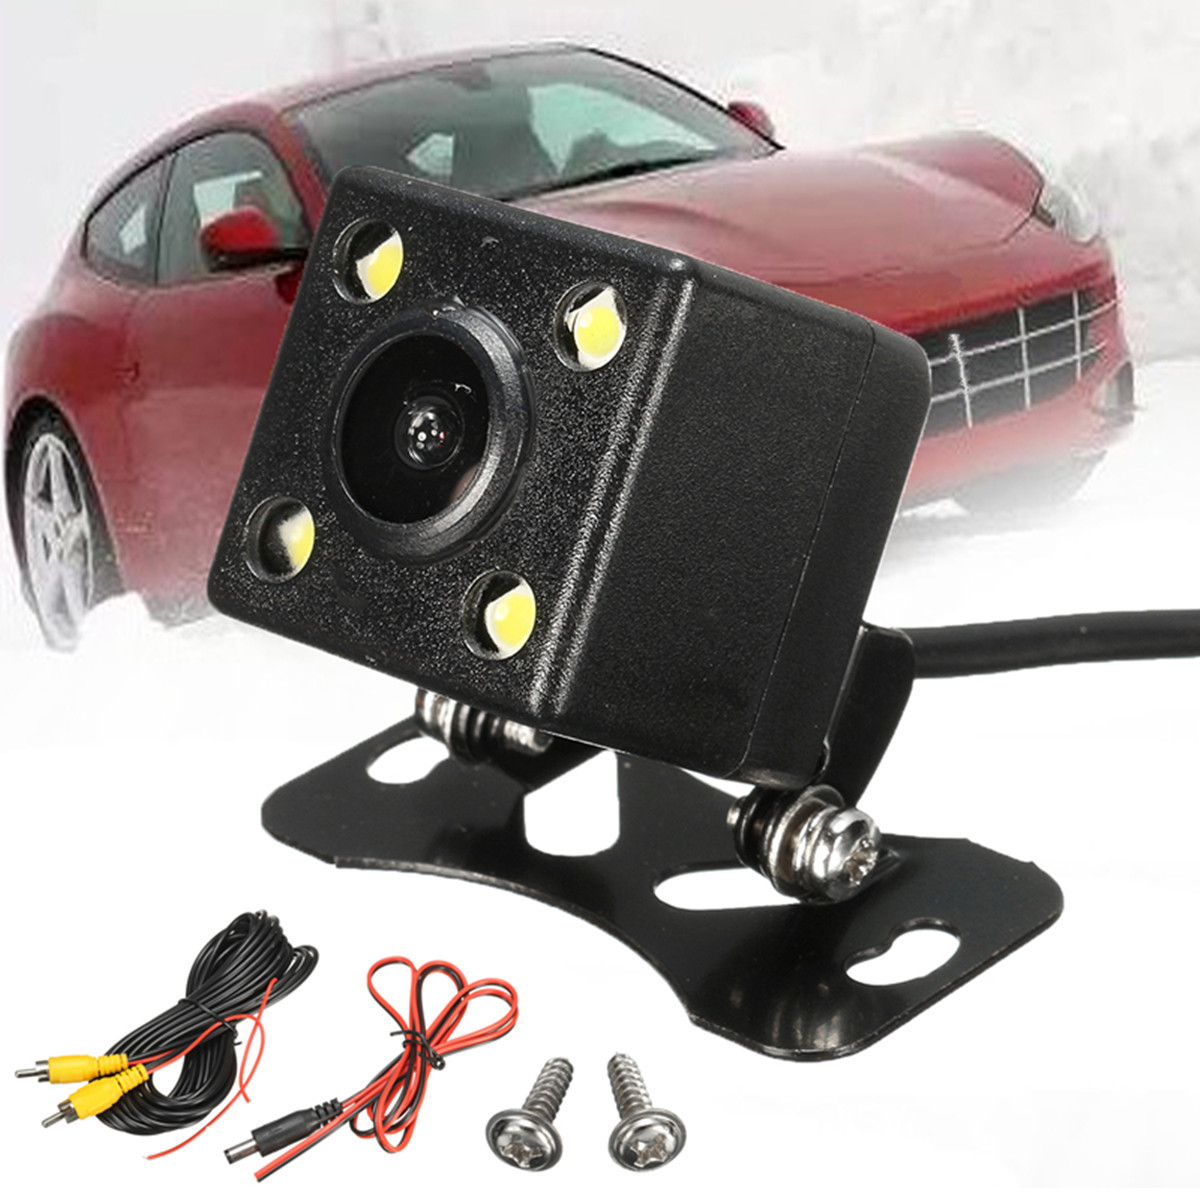 Car Rear View Camera Kit For Auto Single GPS 1 Din MP3/MP5 bluetooth Player